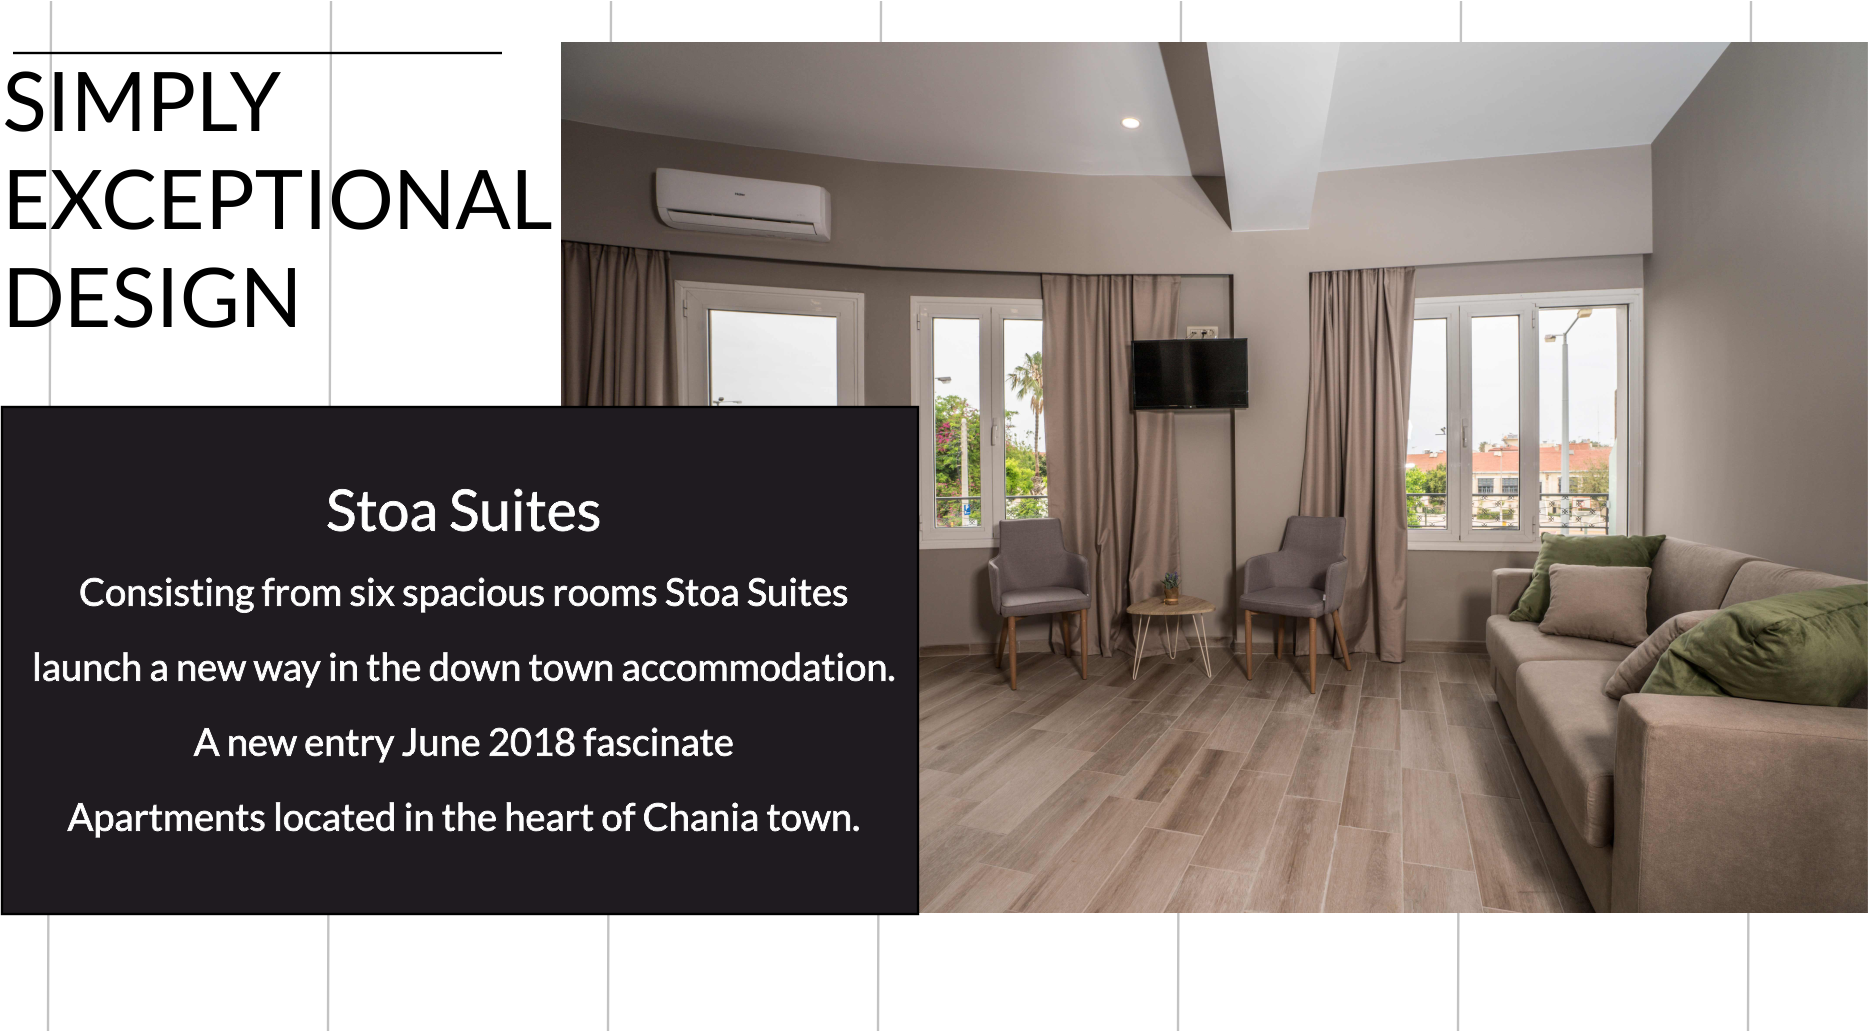 Stoa Suites exceptional